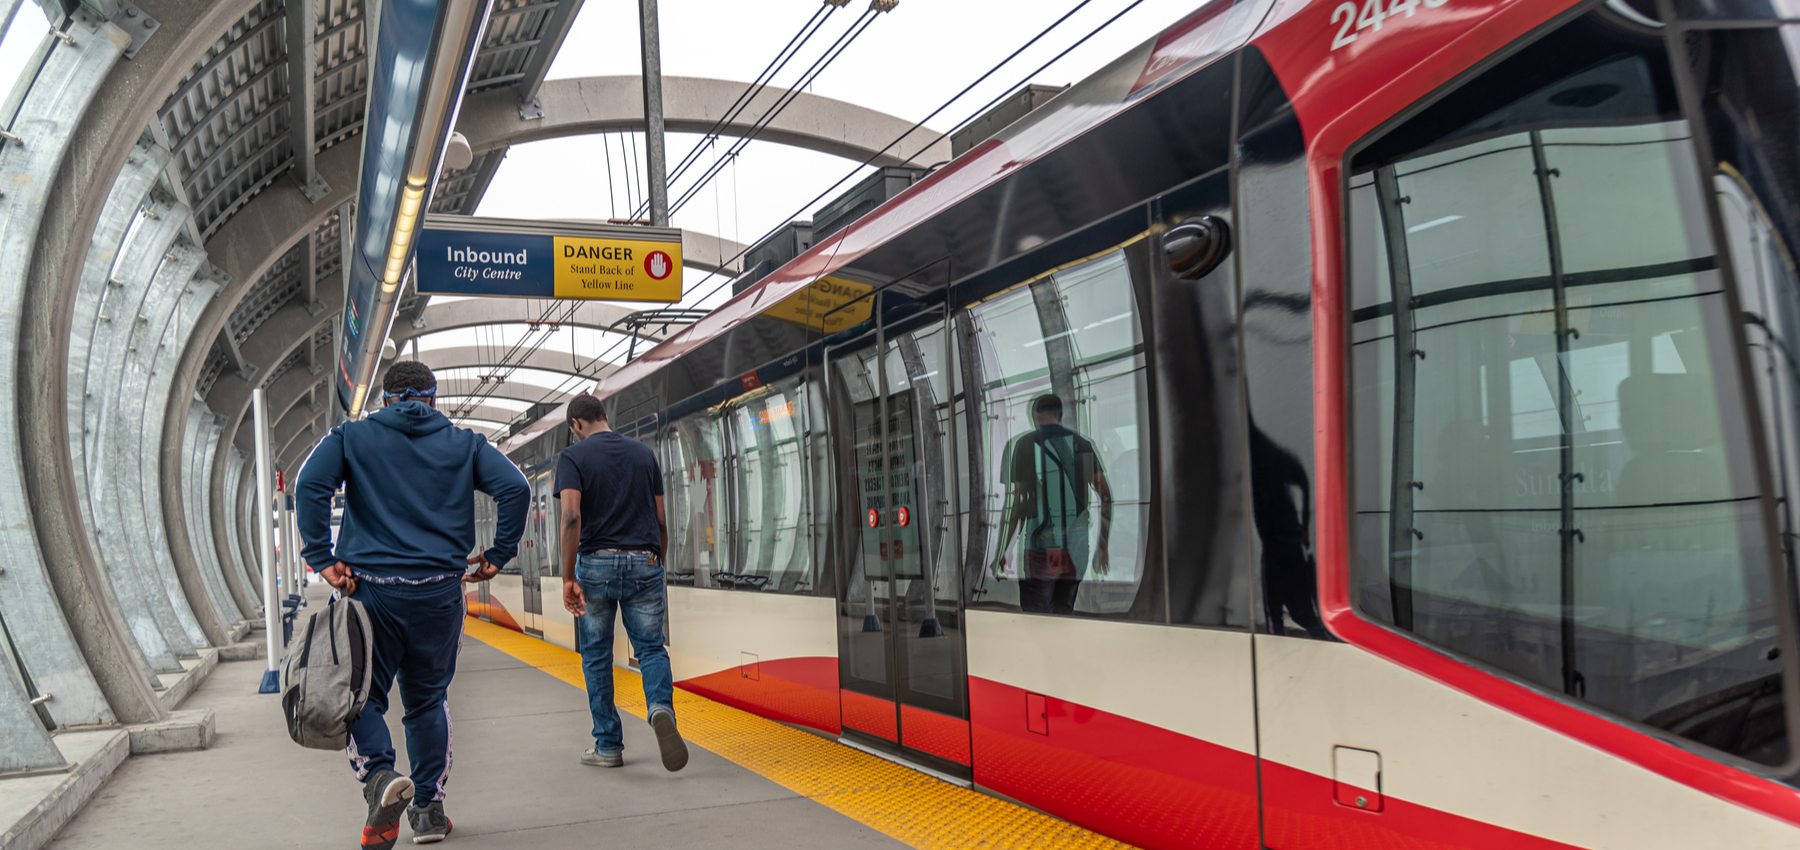 Get to know public transportation in Calgary